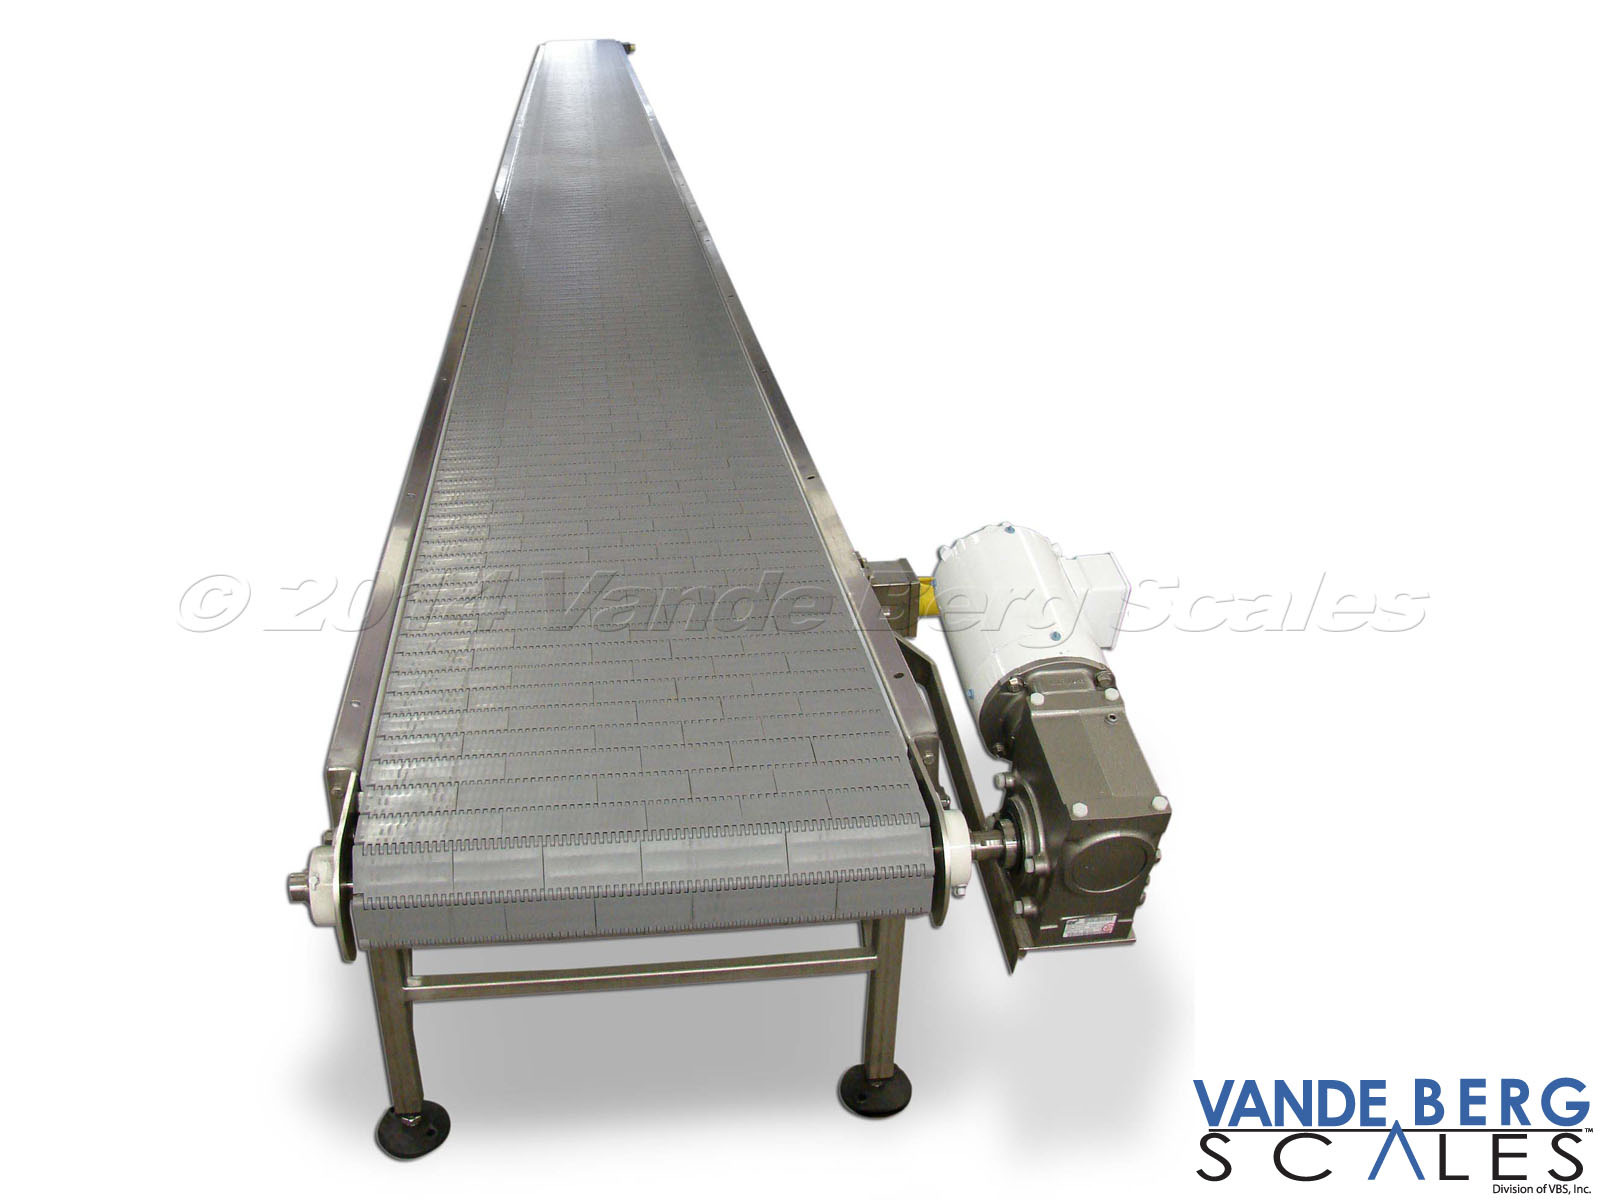 Box conveyor with flat-top belting and heavy duty motor enable long conveyor lengths